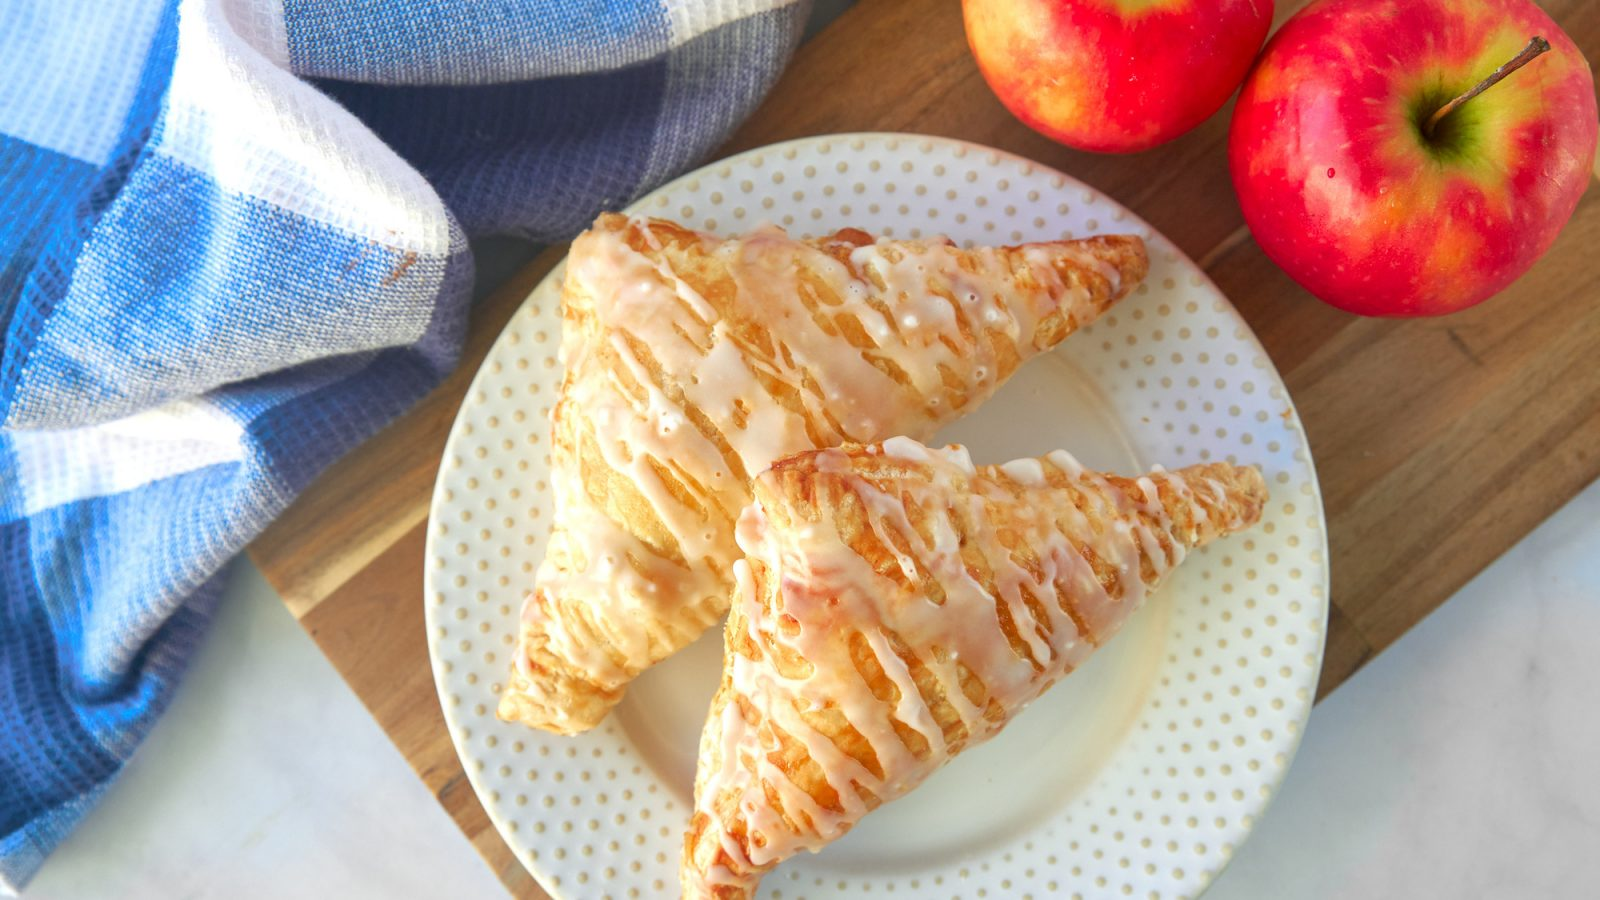 vegan apple turnovers on a serving plate